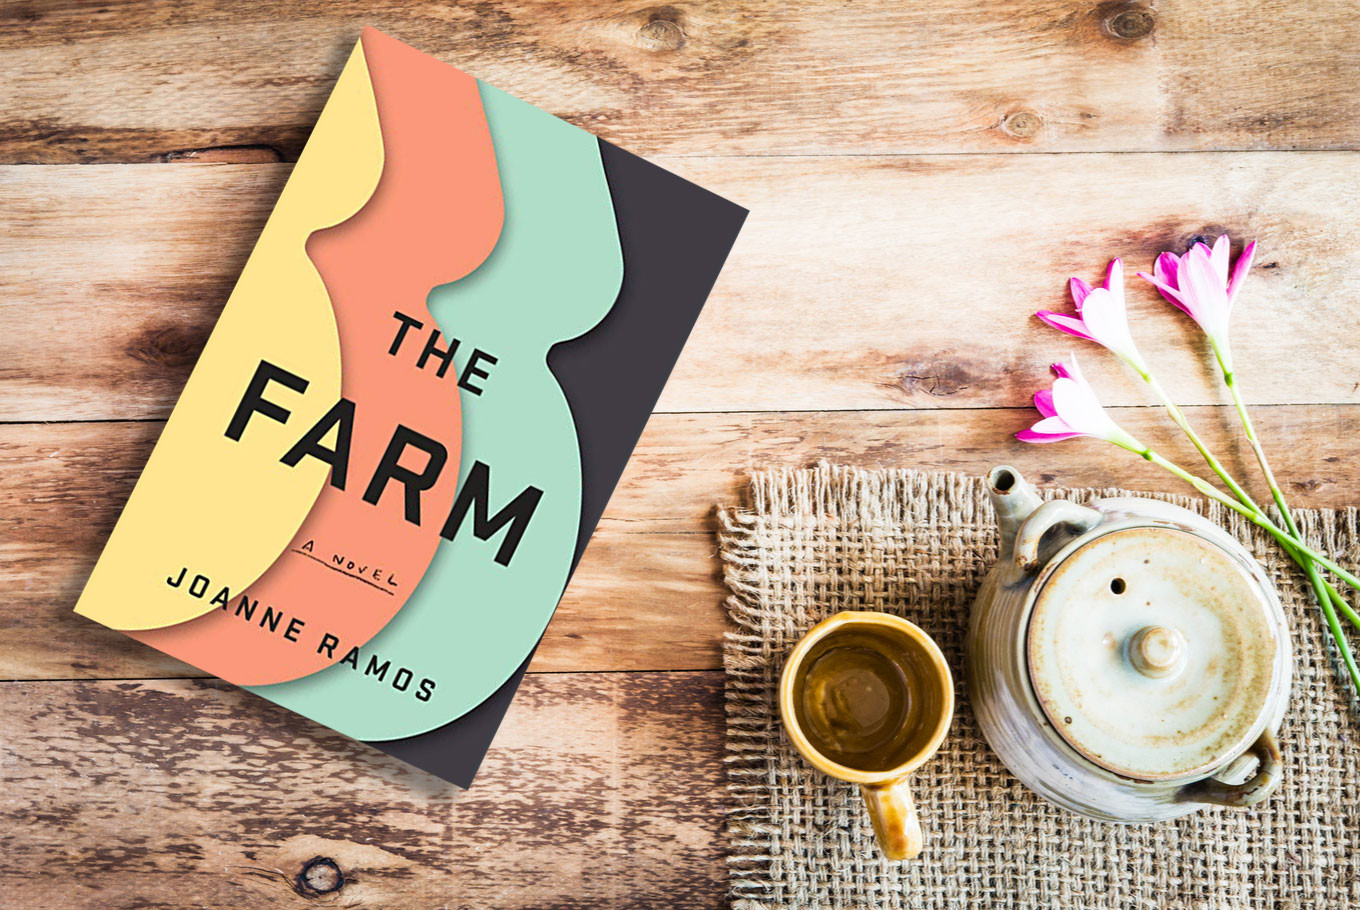 'The Farm' raises questions about surrogacy, commodification of women